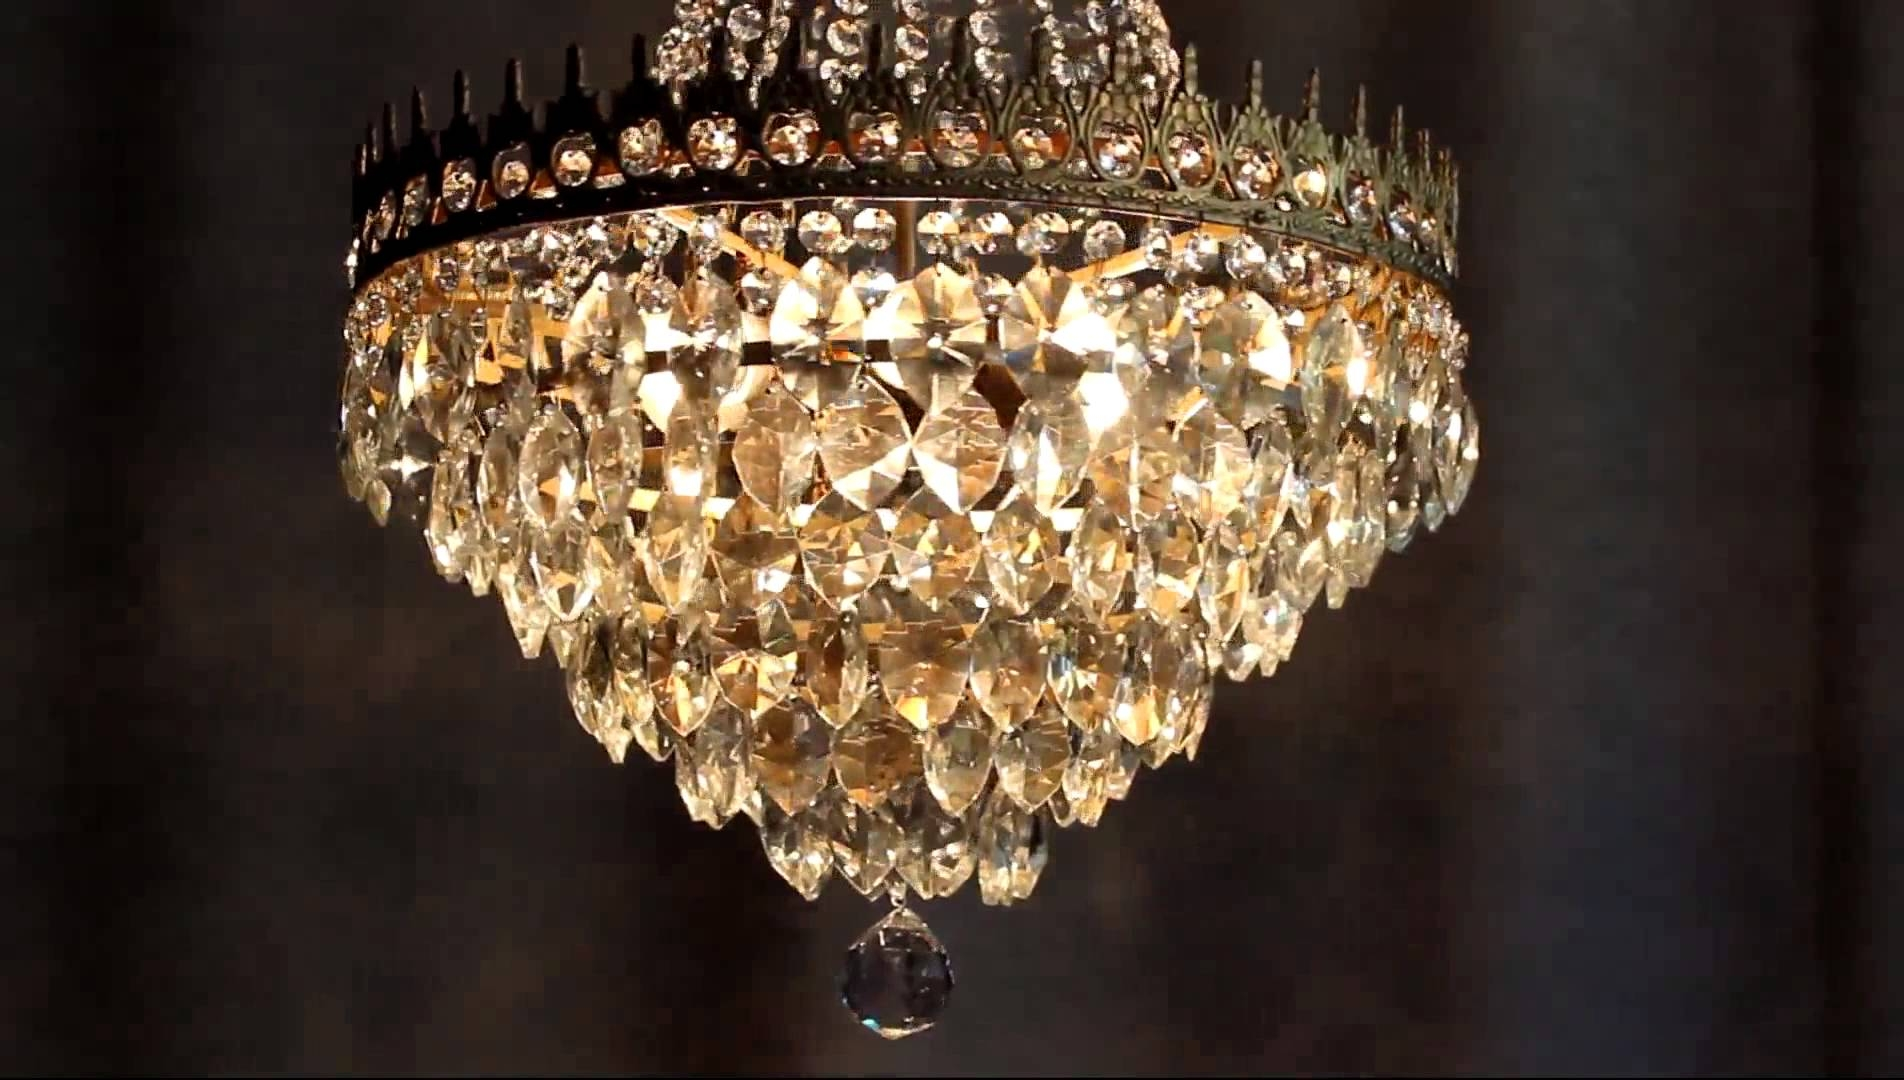 Huge Antique Luster Crystal Candelabra Chandelier Lighting Brass Within Huge Crystal Chandeliers (View 4 of 15)